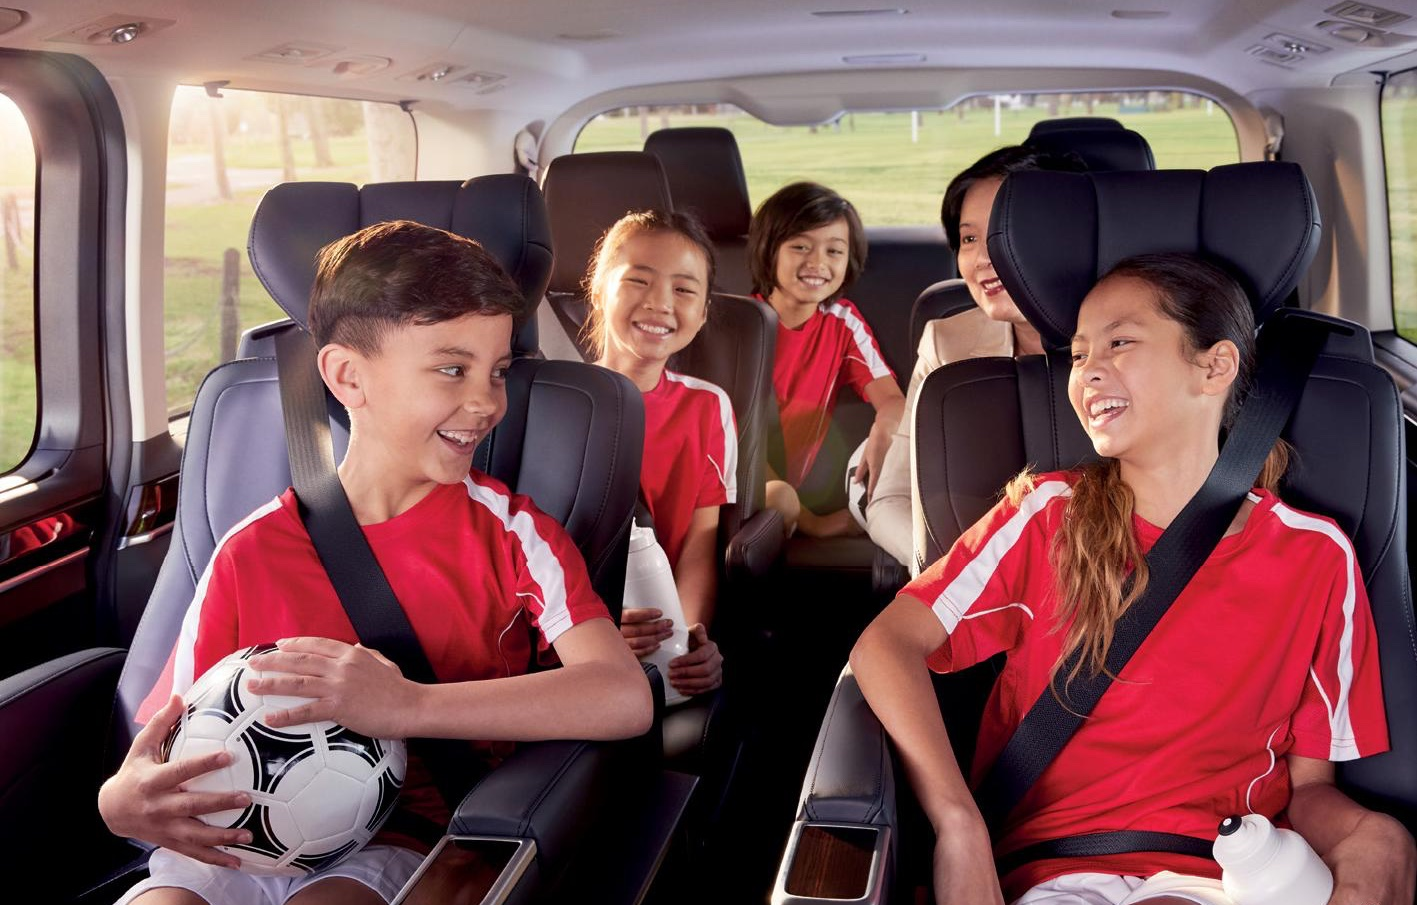 Toyota_Granvia_People_Mover_Interior_Children_red_shirts_laughing